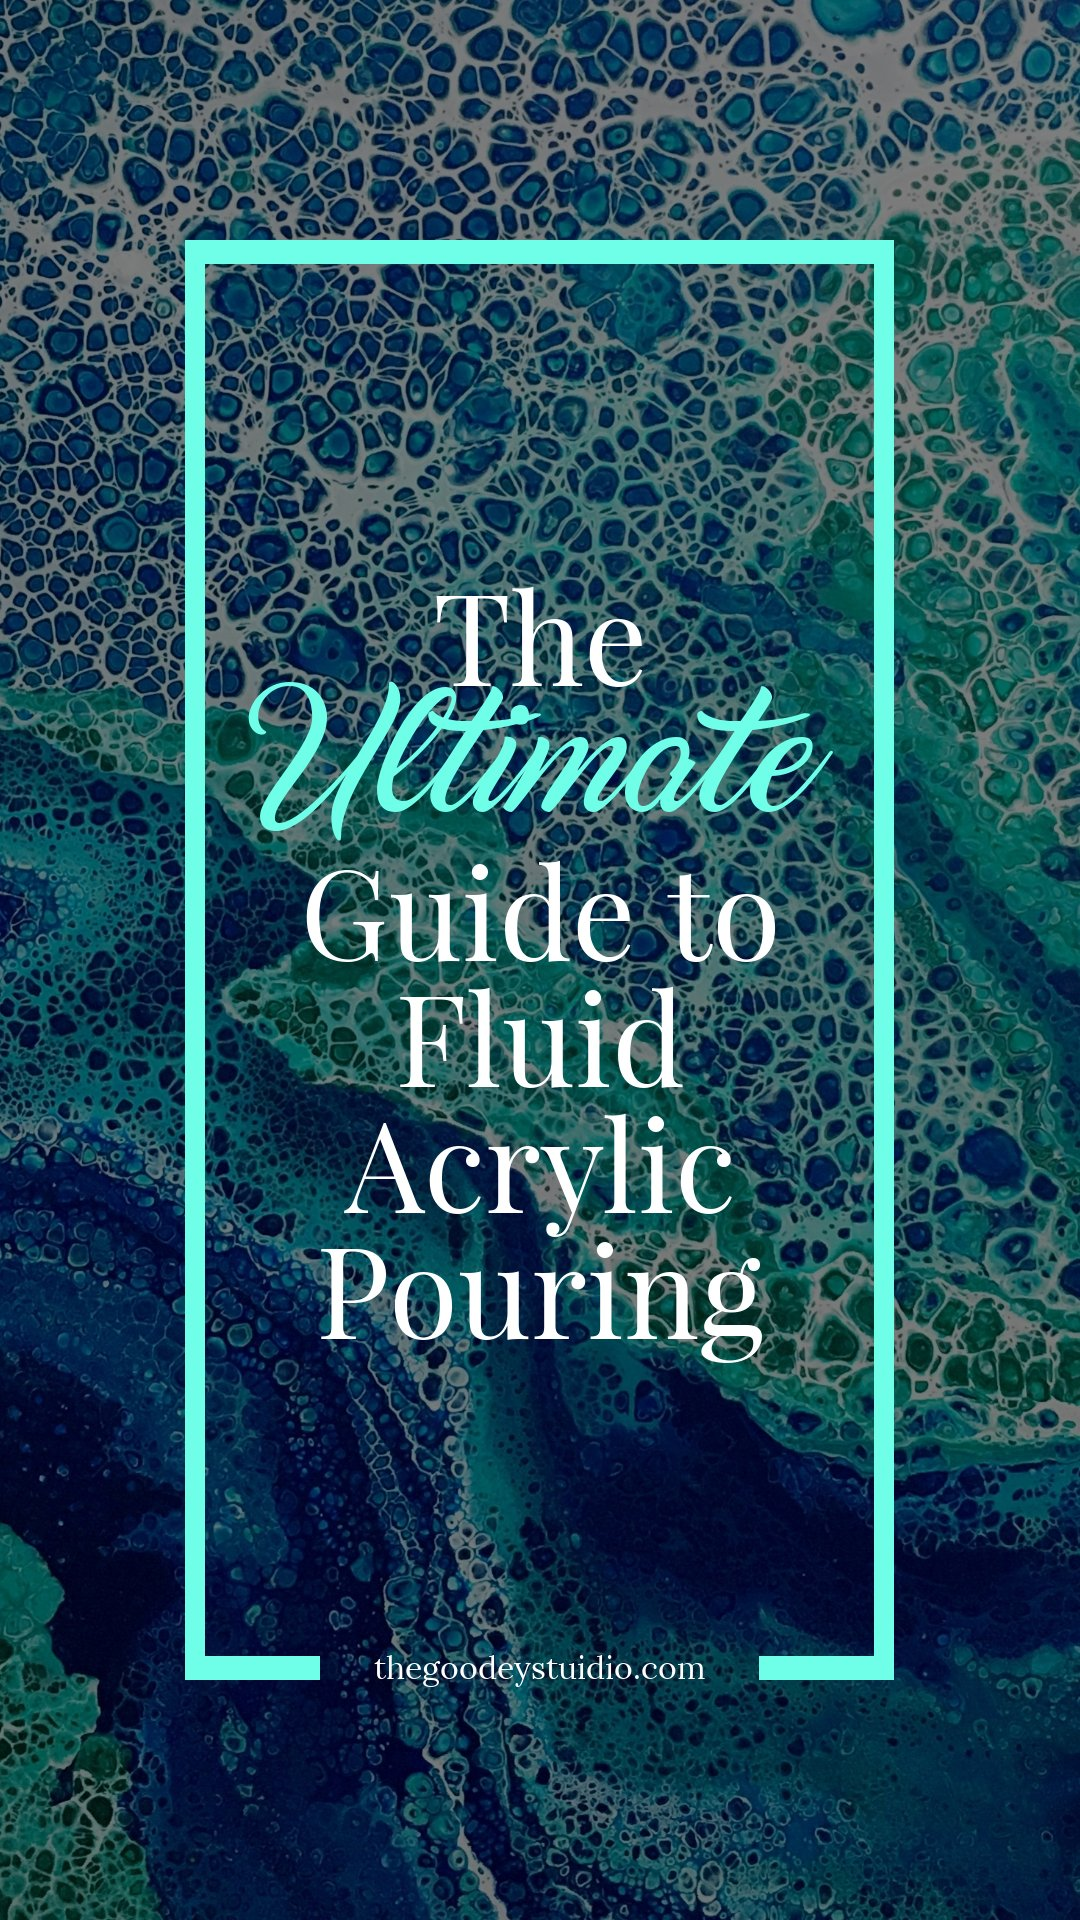 The Ultimate Guide to Fluid Acrylic Pouring